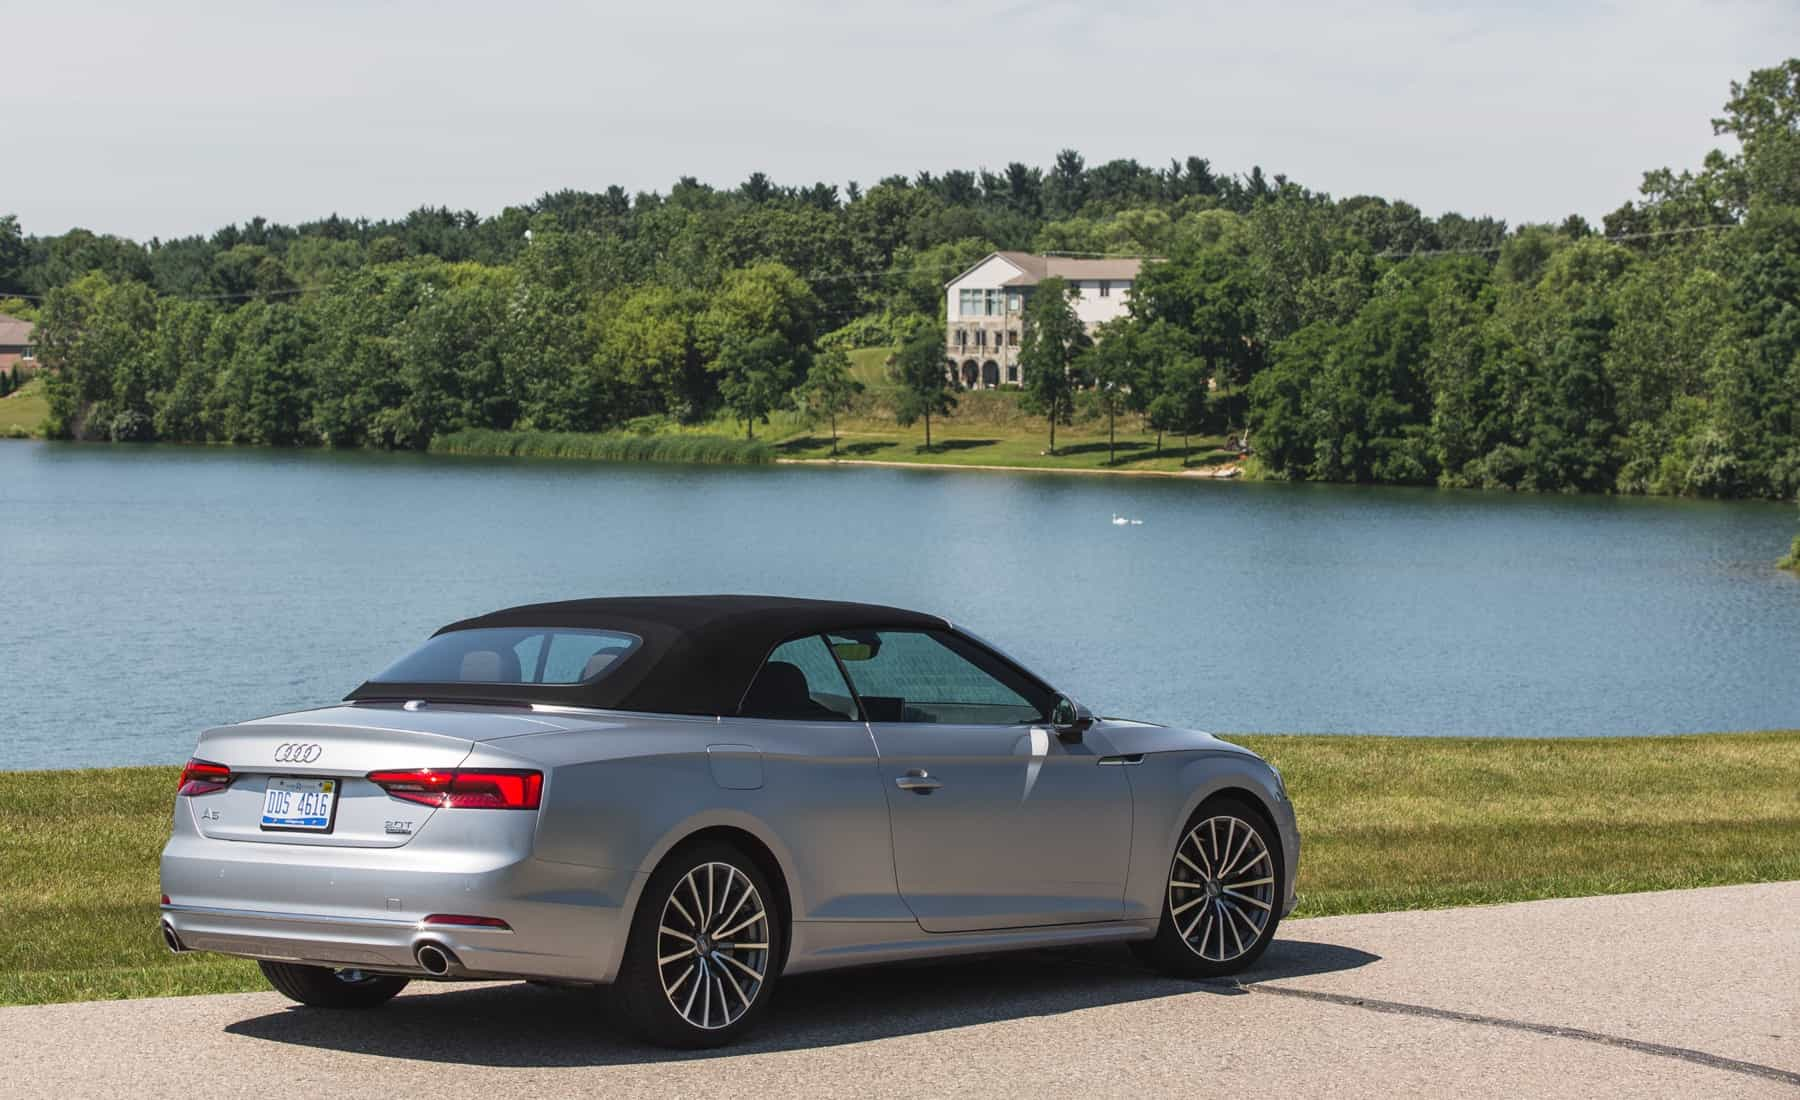 2018 Audi A5 Cabriolet Exterior Roof Close Rear And Side (Photo 44 of 45)